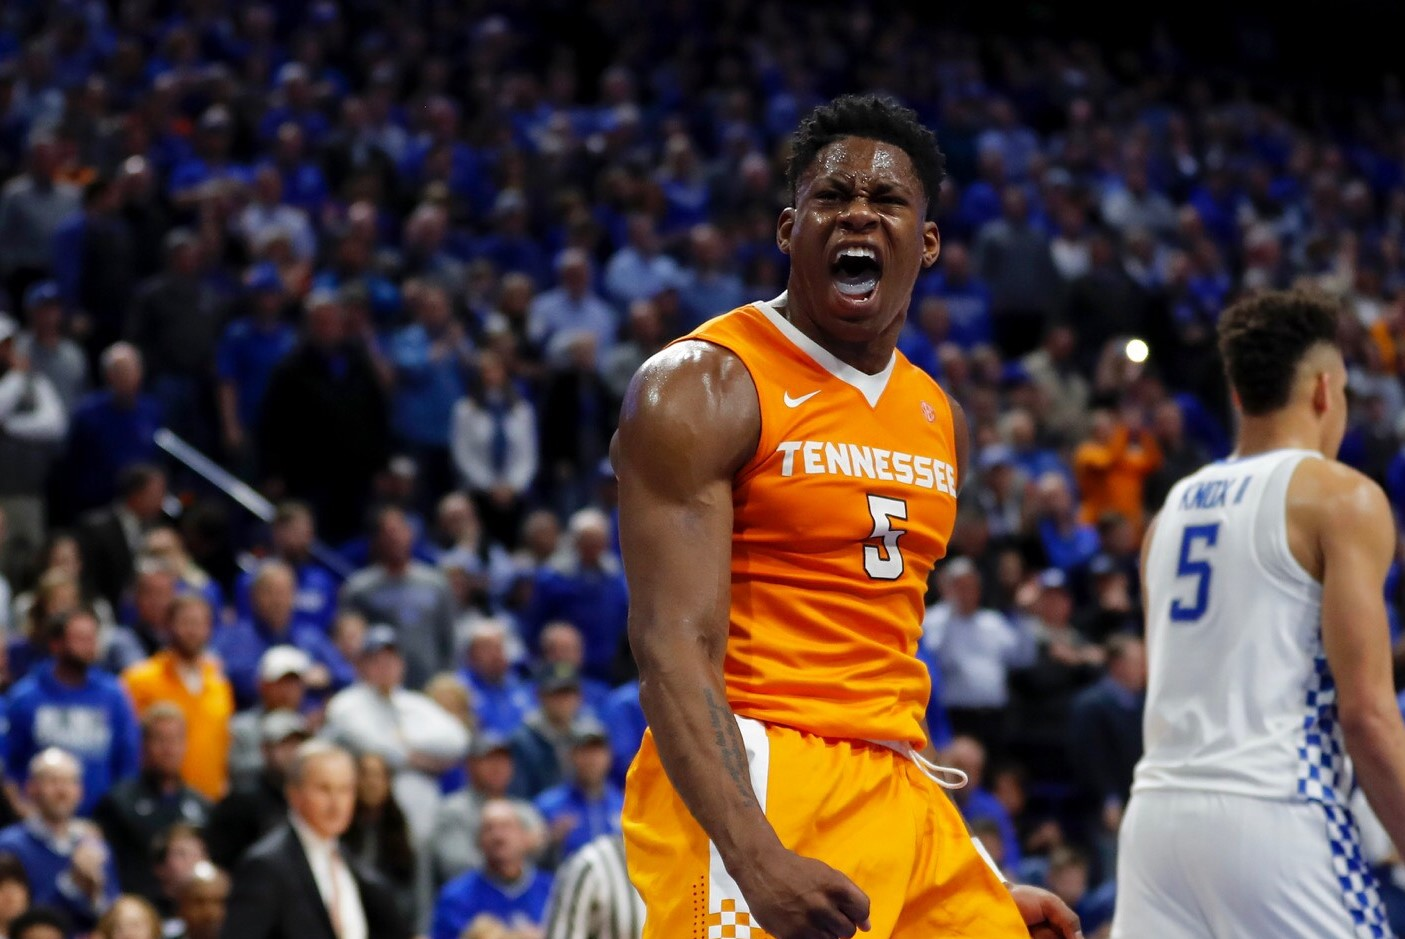 Watch: Tennessee Basketball is Making History